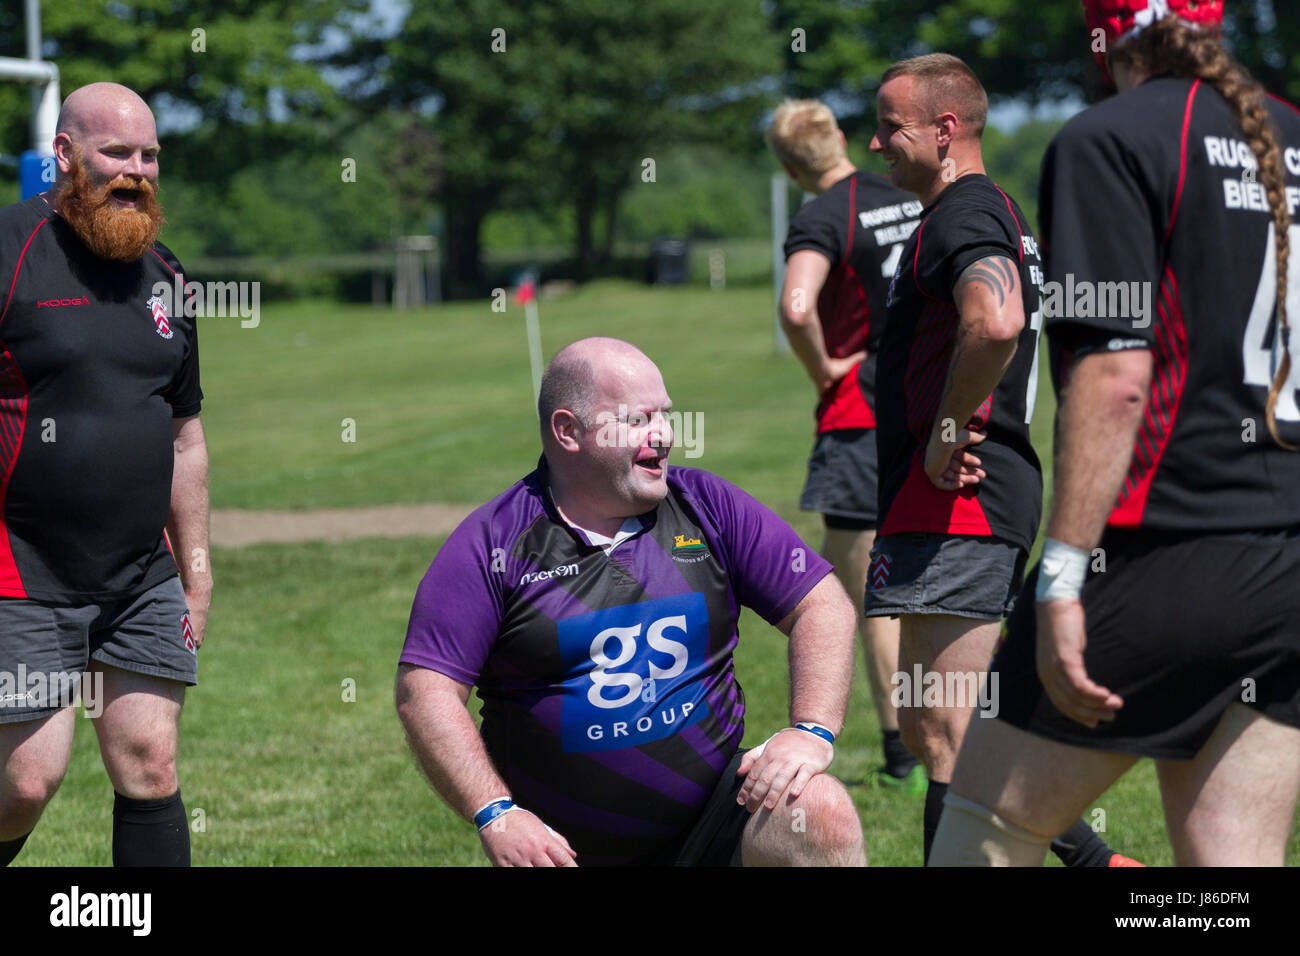 Humorous and good-natured moment in friendly rugby match - Stock Image